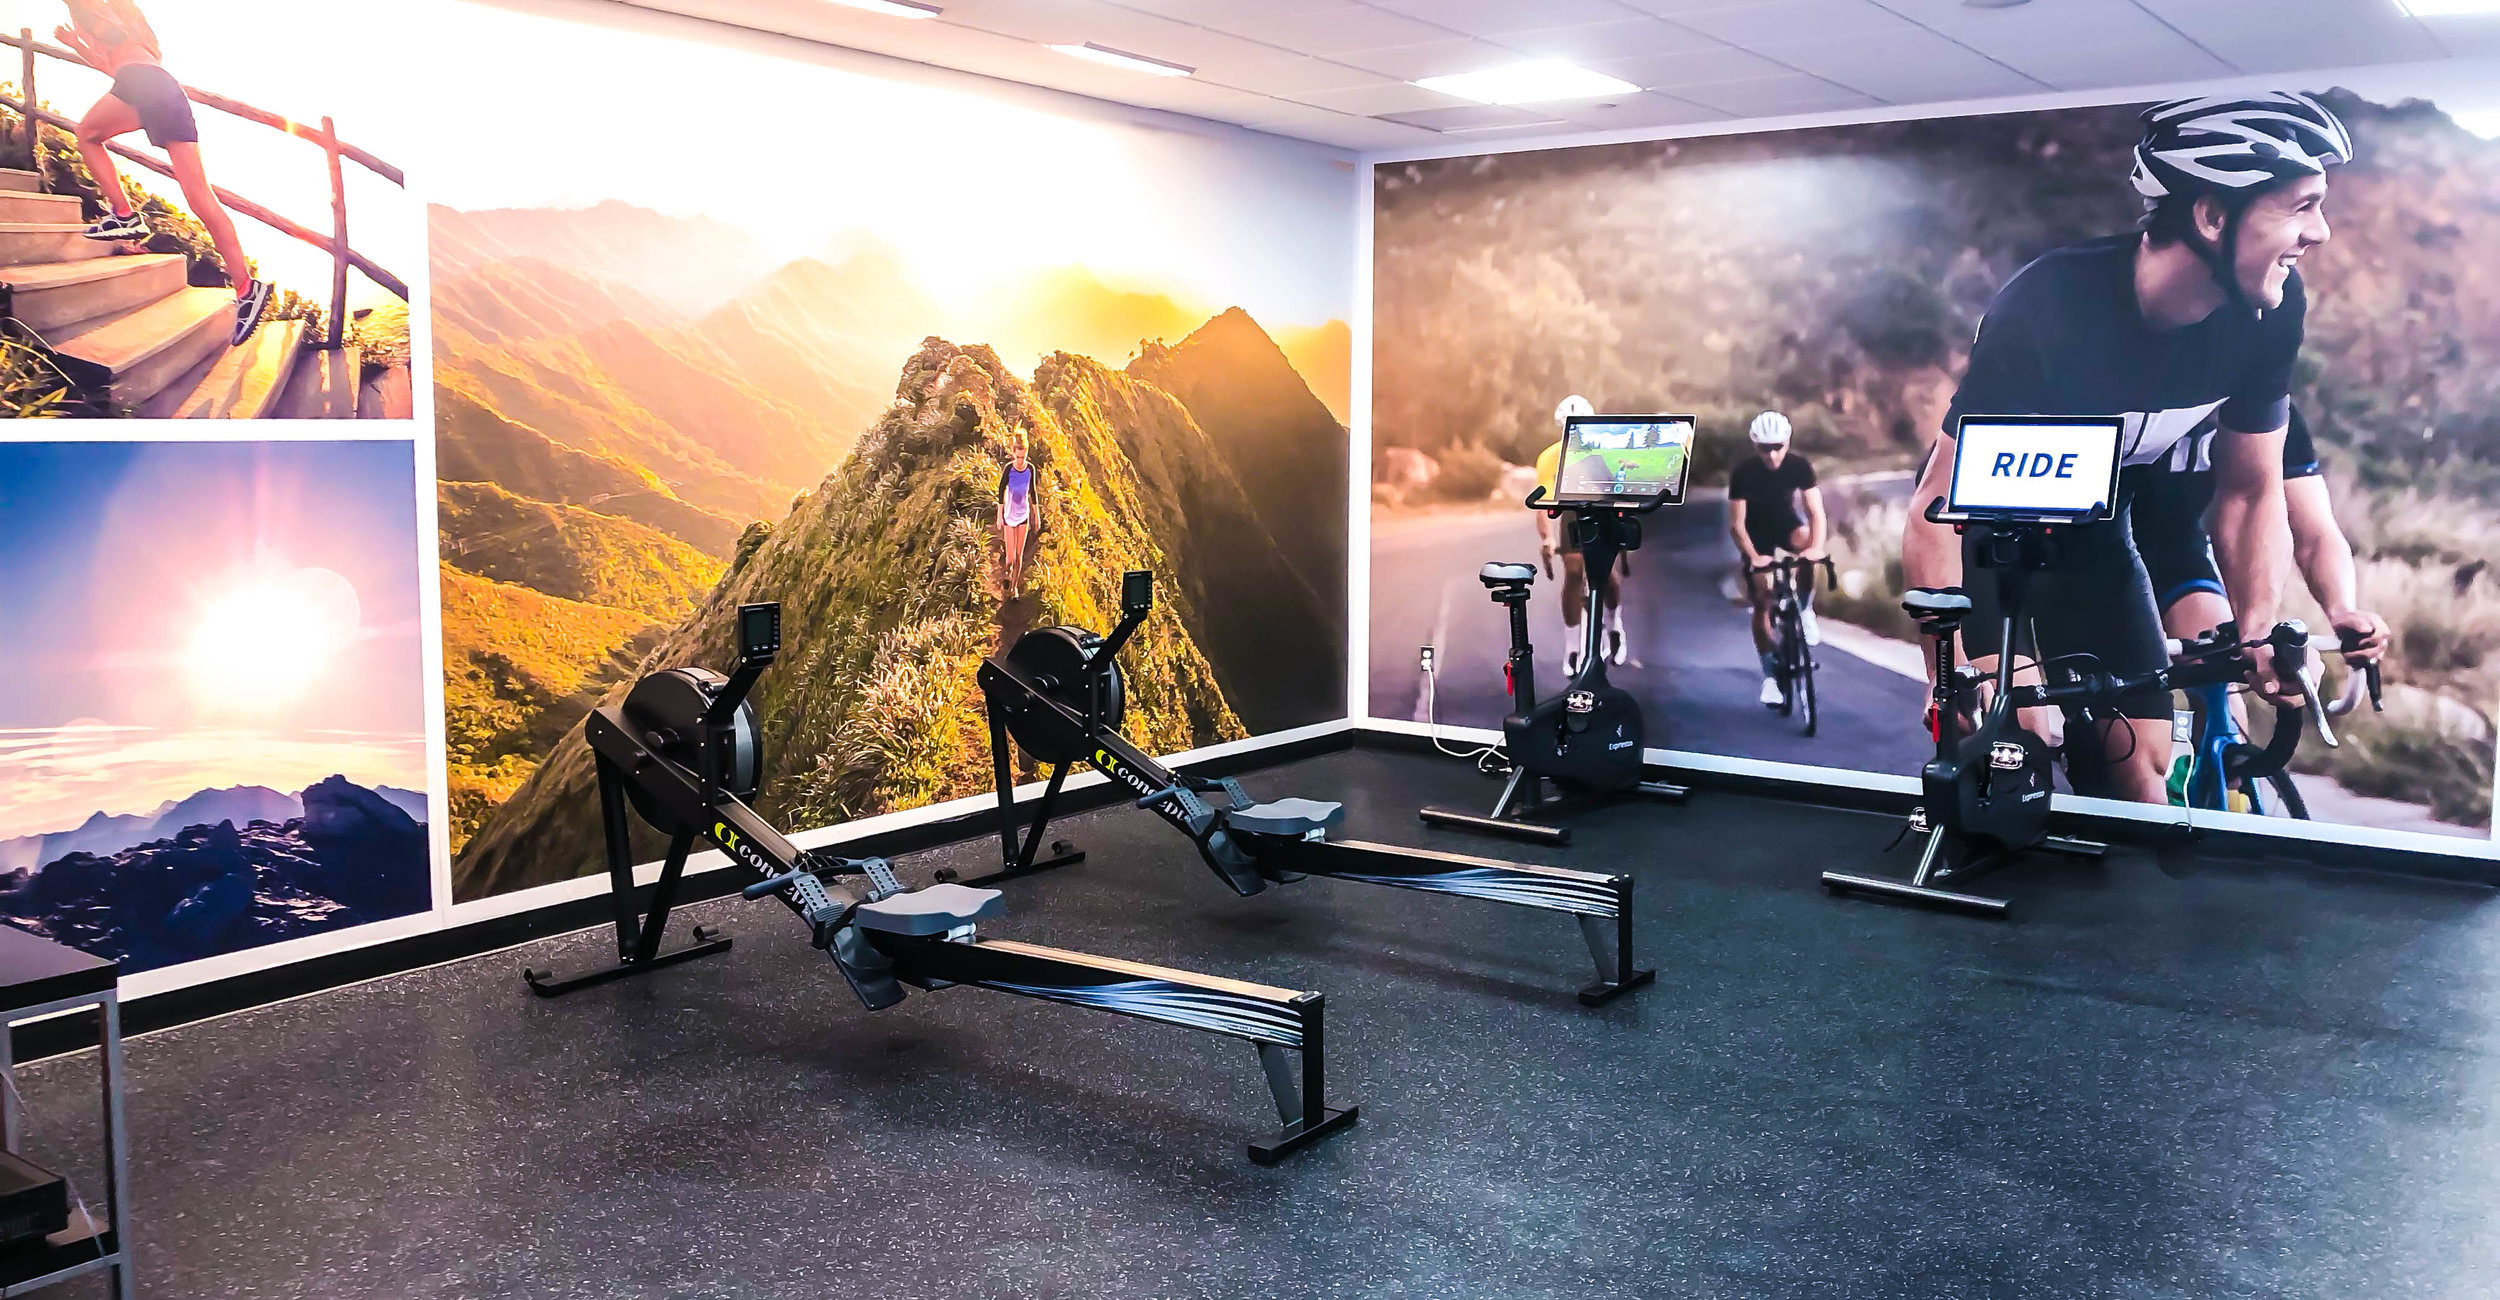 The ever-popular Expresso bikes and Concept2 rowers add to the fitness center's variety of workout options.